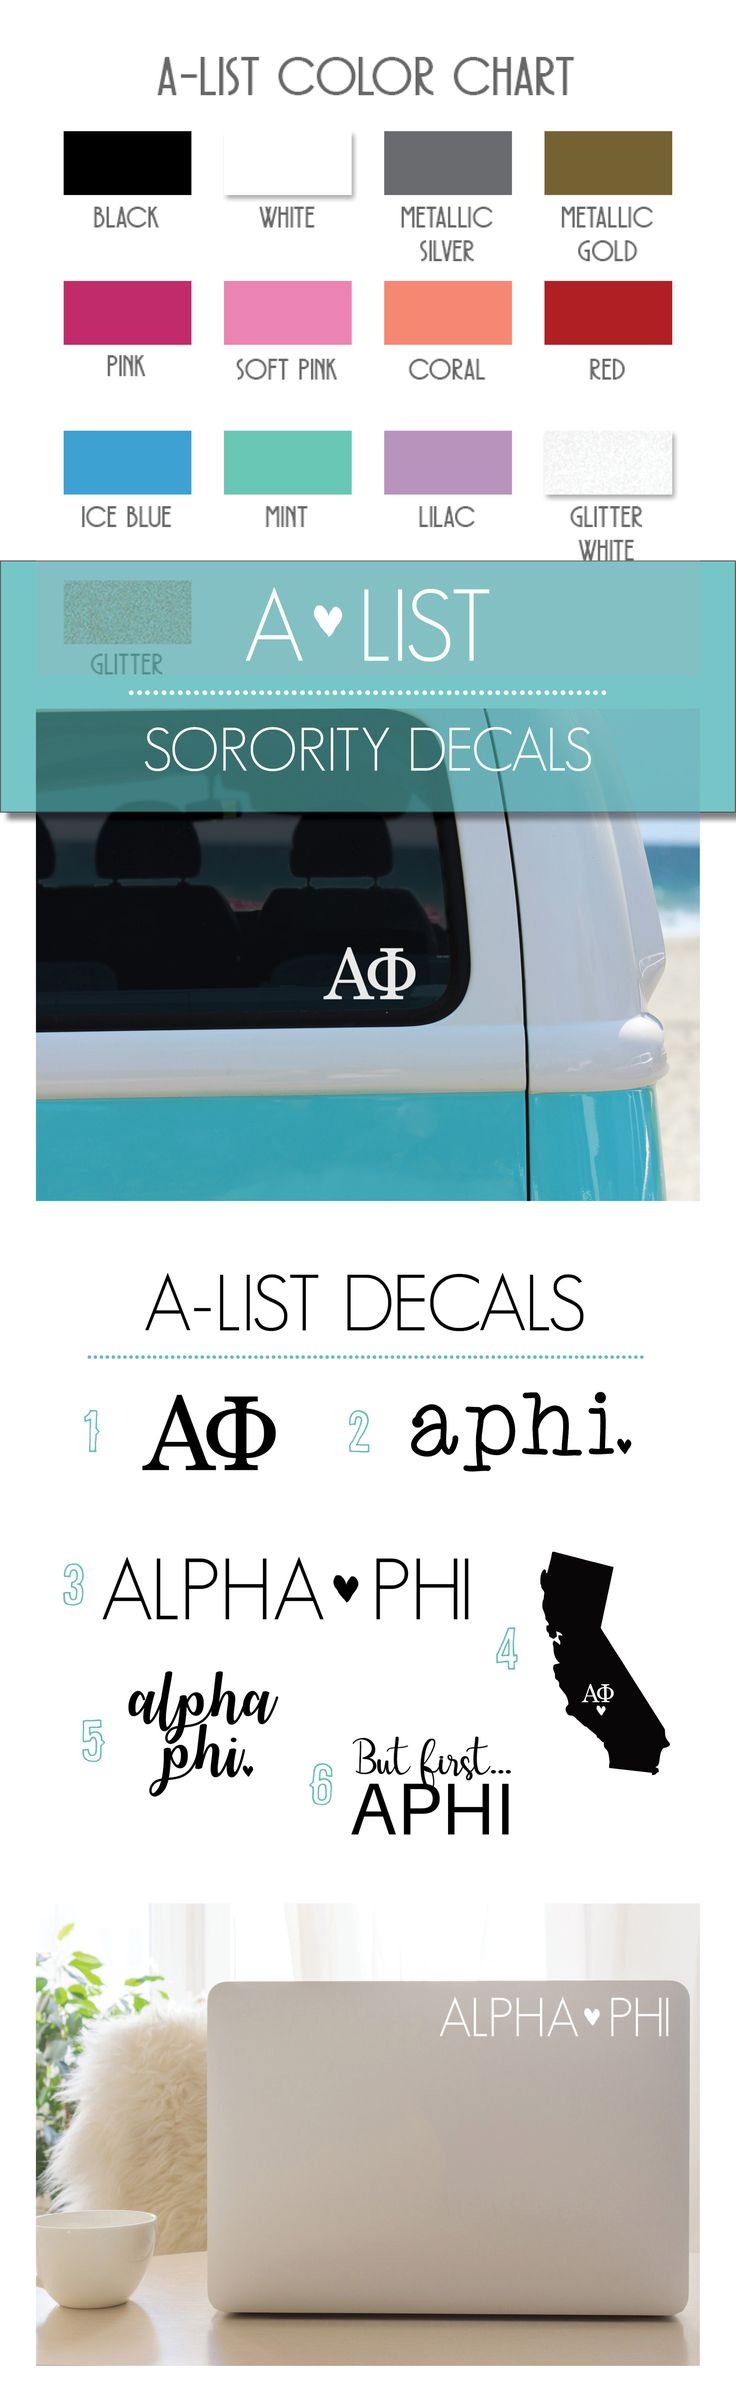 Alpha Phi Decal 6-Pack These custom cut Alpha Phi vinyl adhesive decals are perfect for your car, computer, water bottle, phone case, binders, and more! You can apply these APhi decals to any hard surface. The possibilities are endless! Each decal pack will include 6 sorority designs; keep them all to yourself to spice up your life with Alpha Phi spirit or share them with sisters.